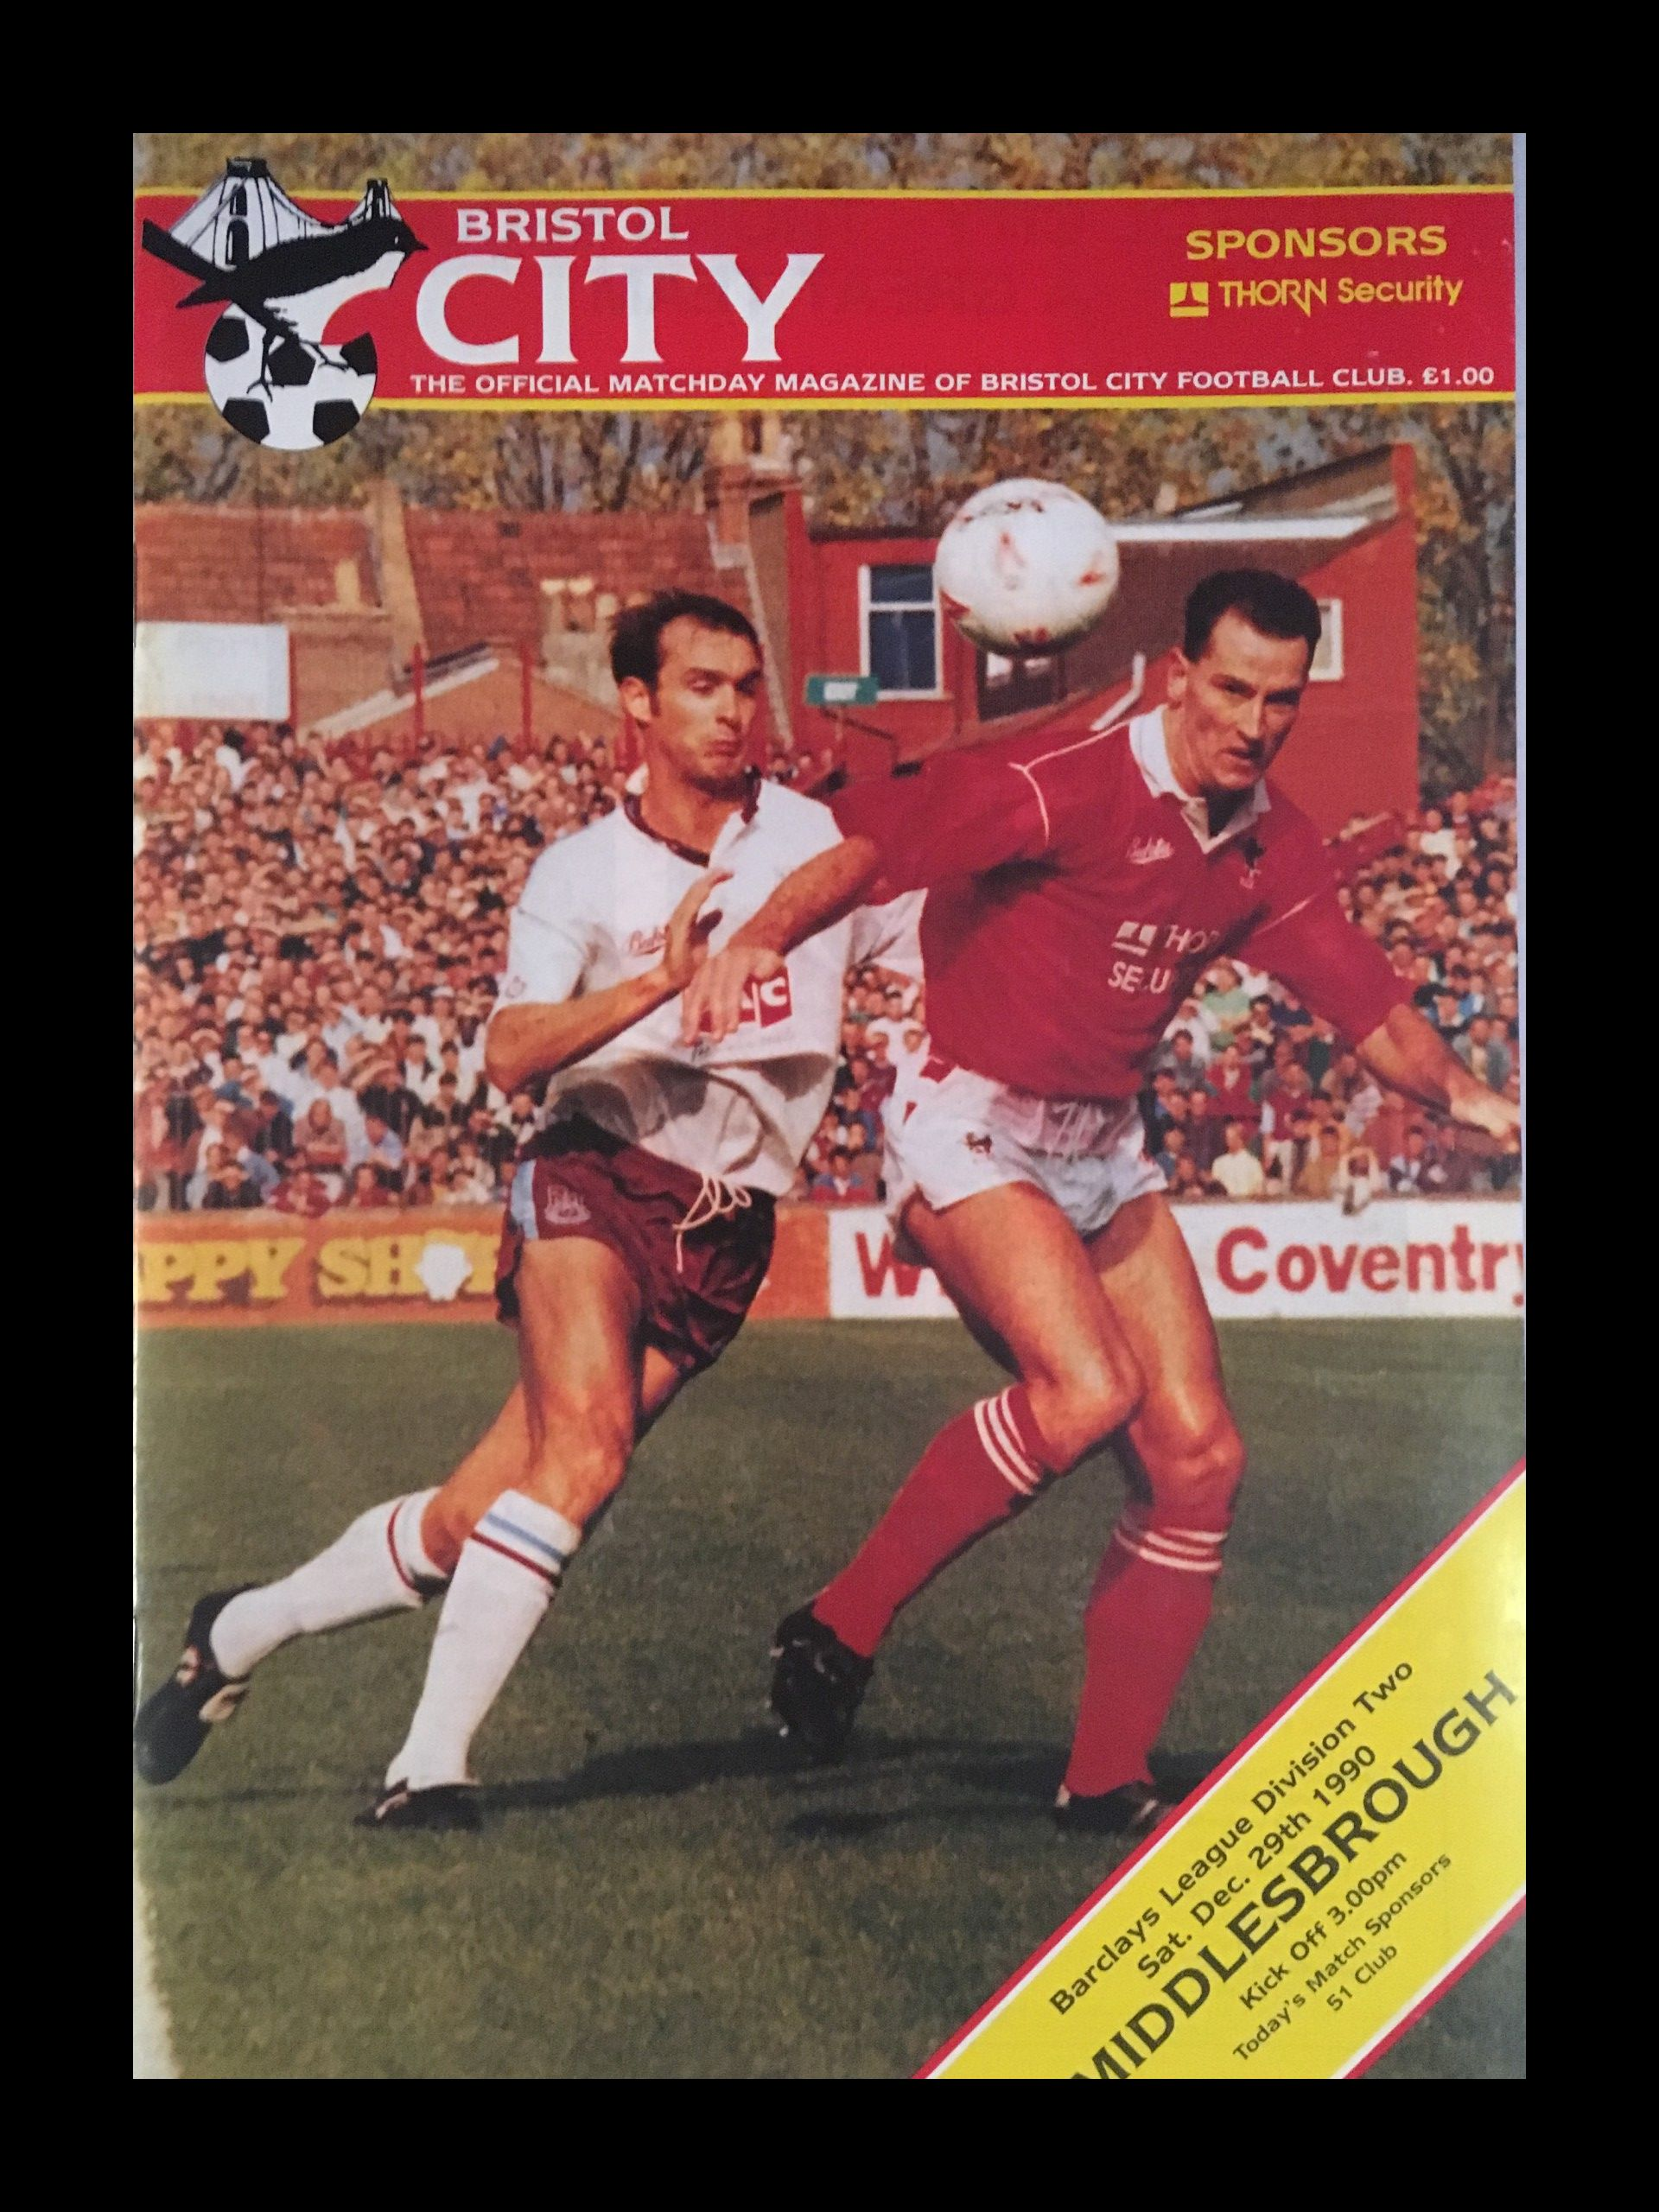 Bristol City v Middlesbrough 29-12-1990 Programme